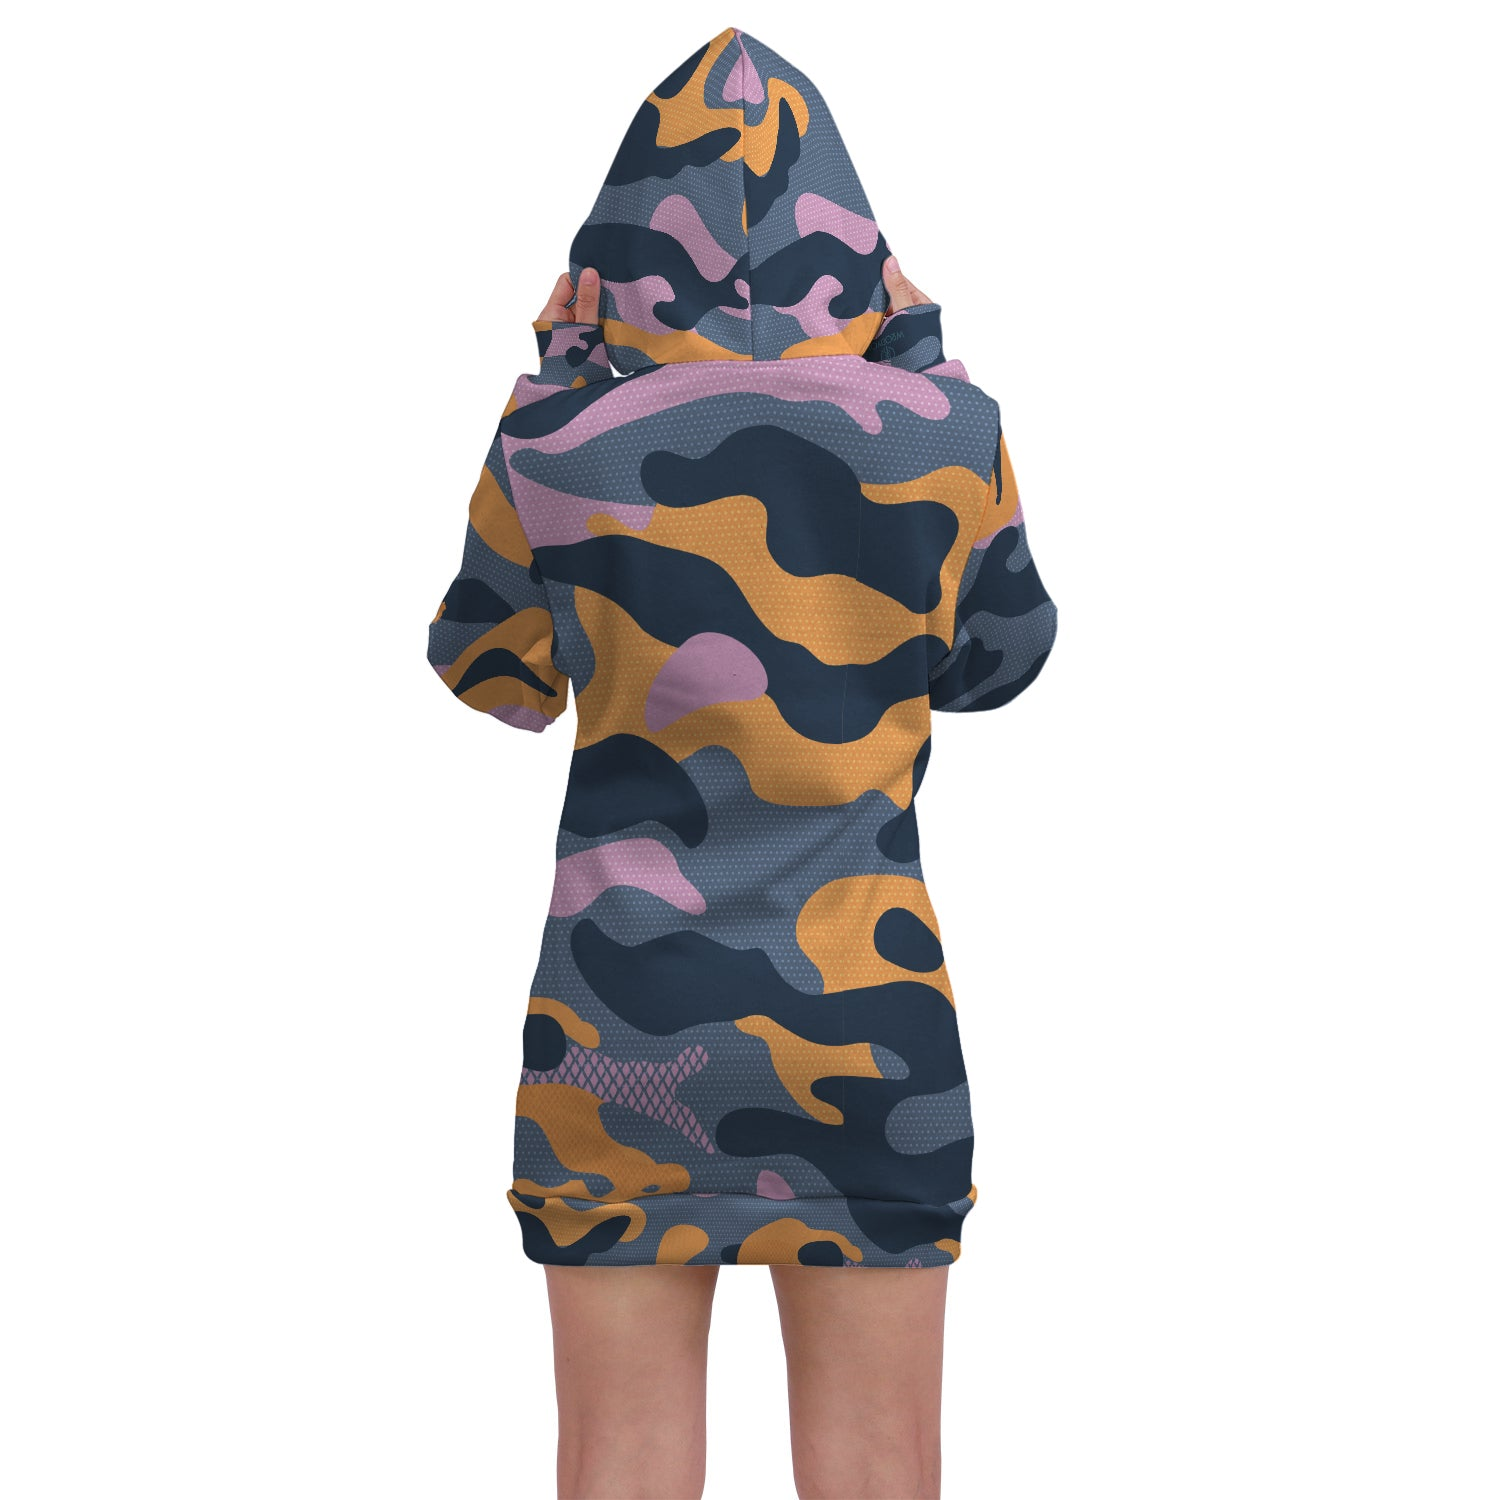 Urban Camo - Hoodie Dress. This custom All Over Printed hoodie dress is the perfect hoodie to stay stylish and fashionable. This hoodie has a trendy style, unique print and comfortable fit.